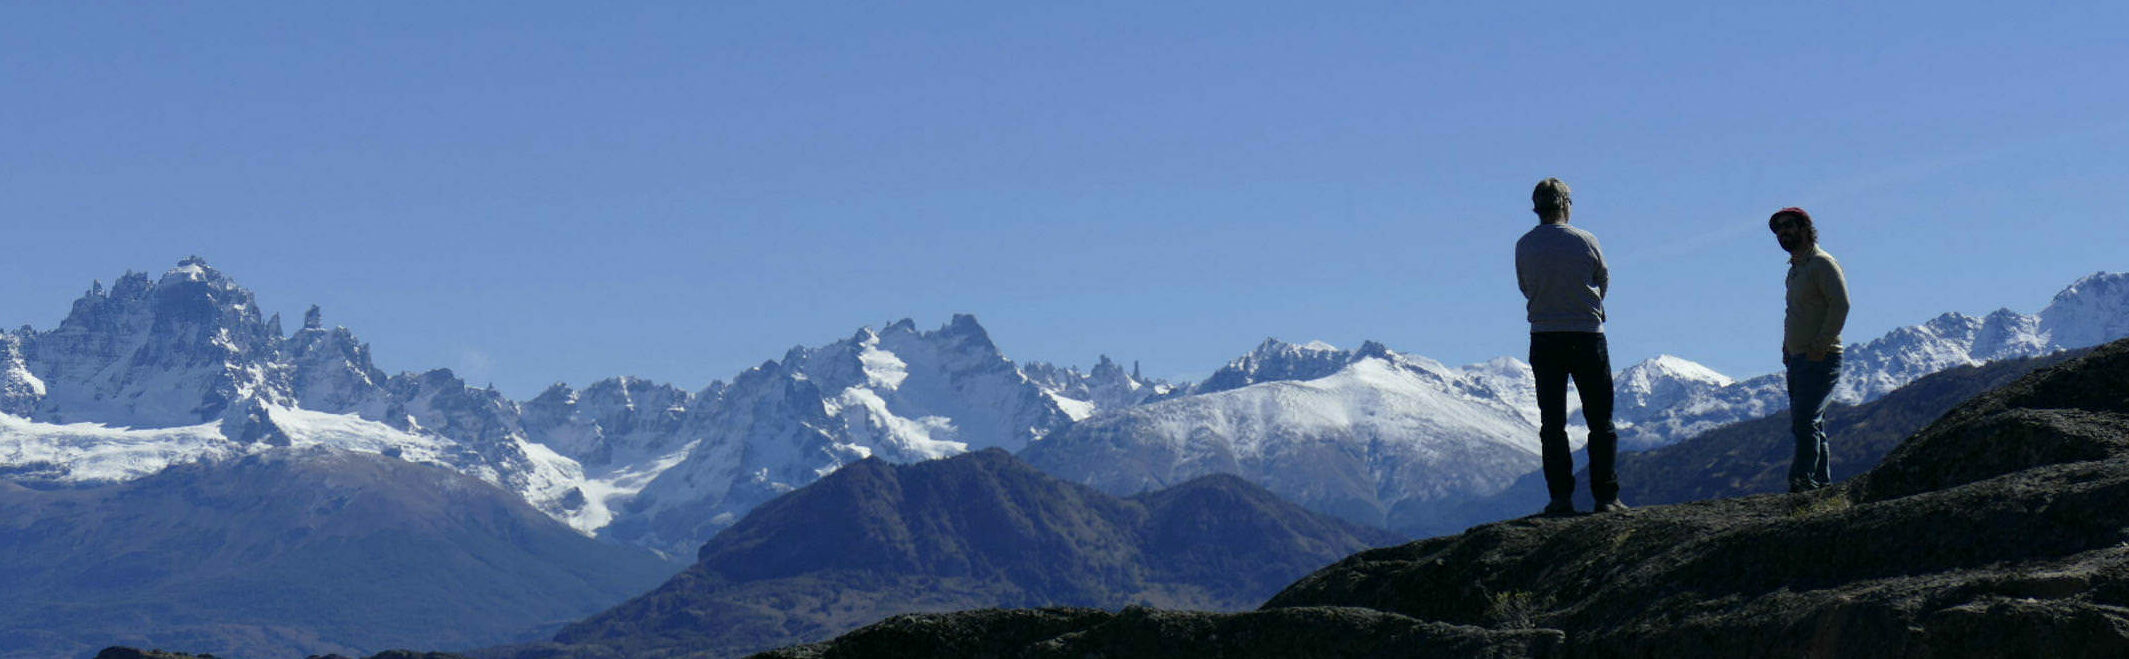 Chile patagonia aysen cerro castillo two people in silhouette with mountains behind